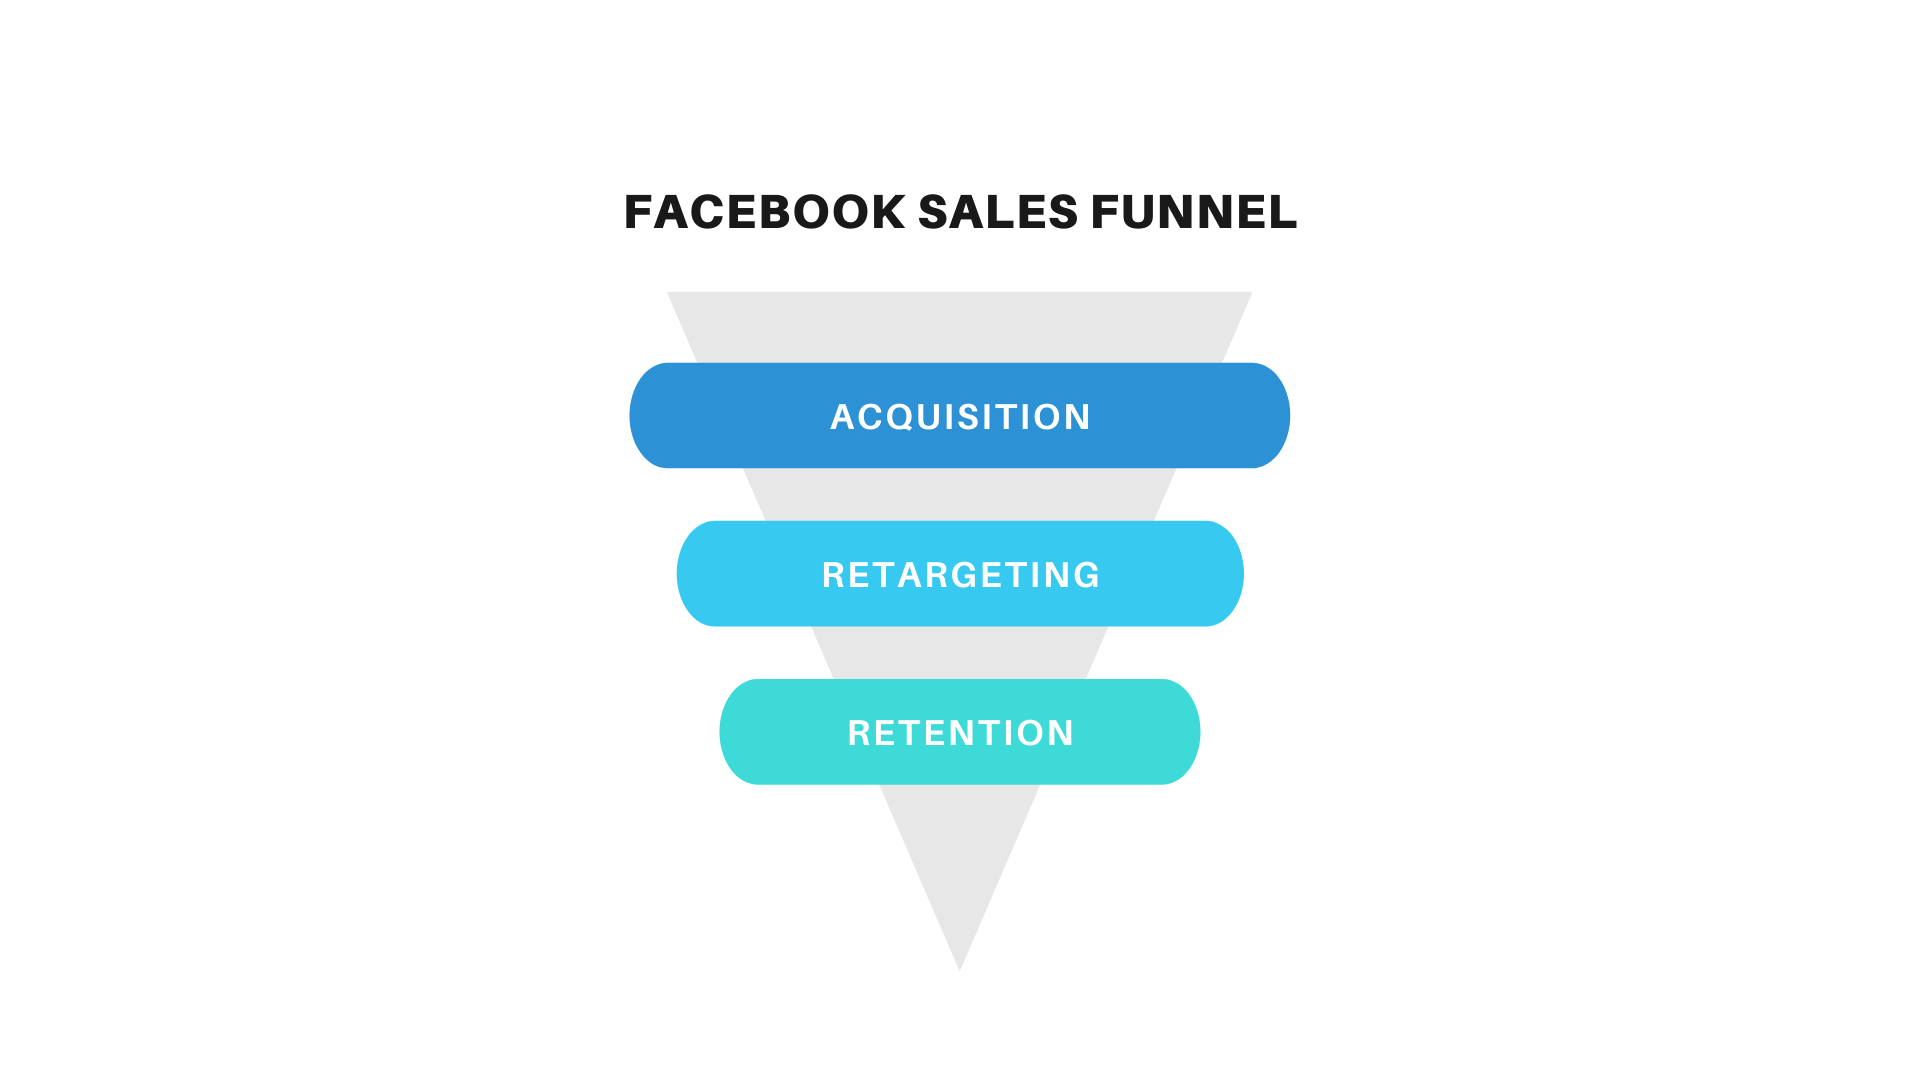 Facebook Sales Funnel